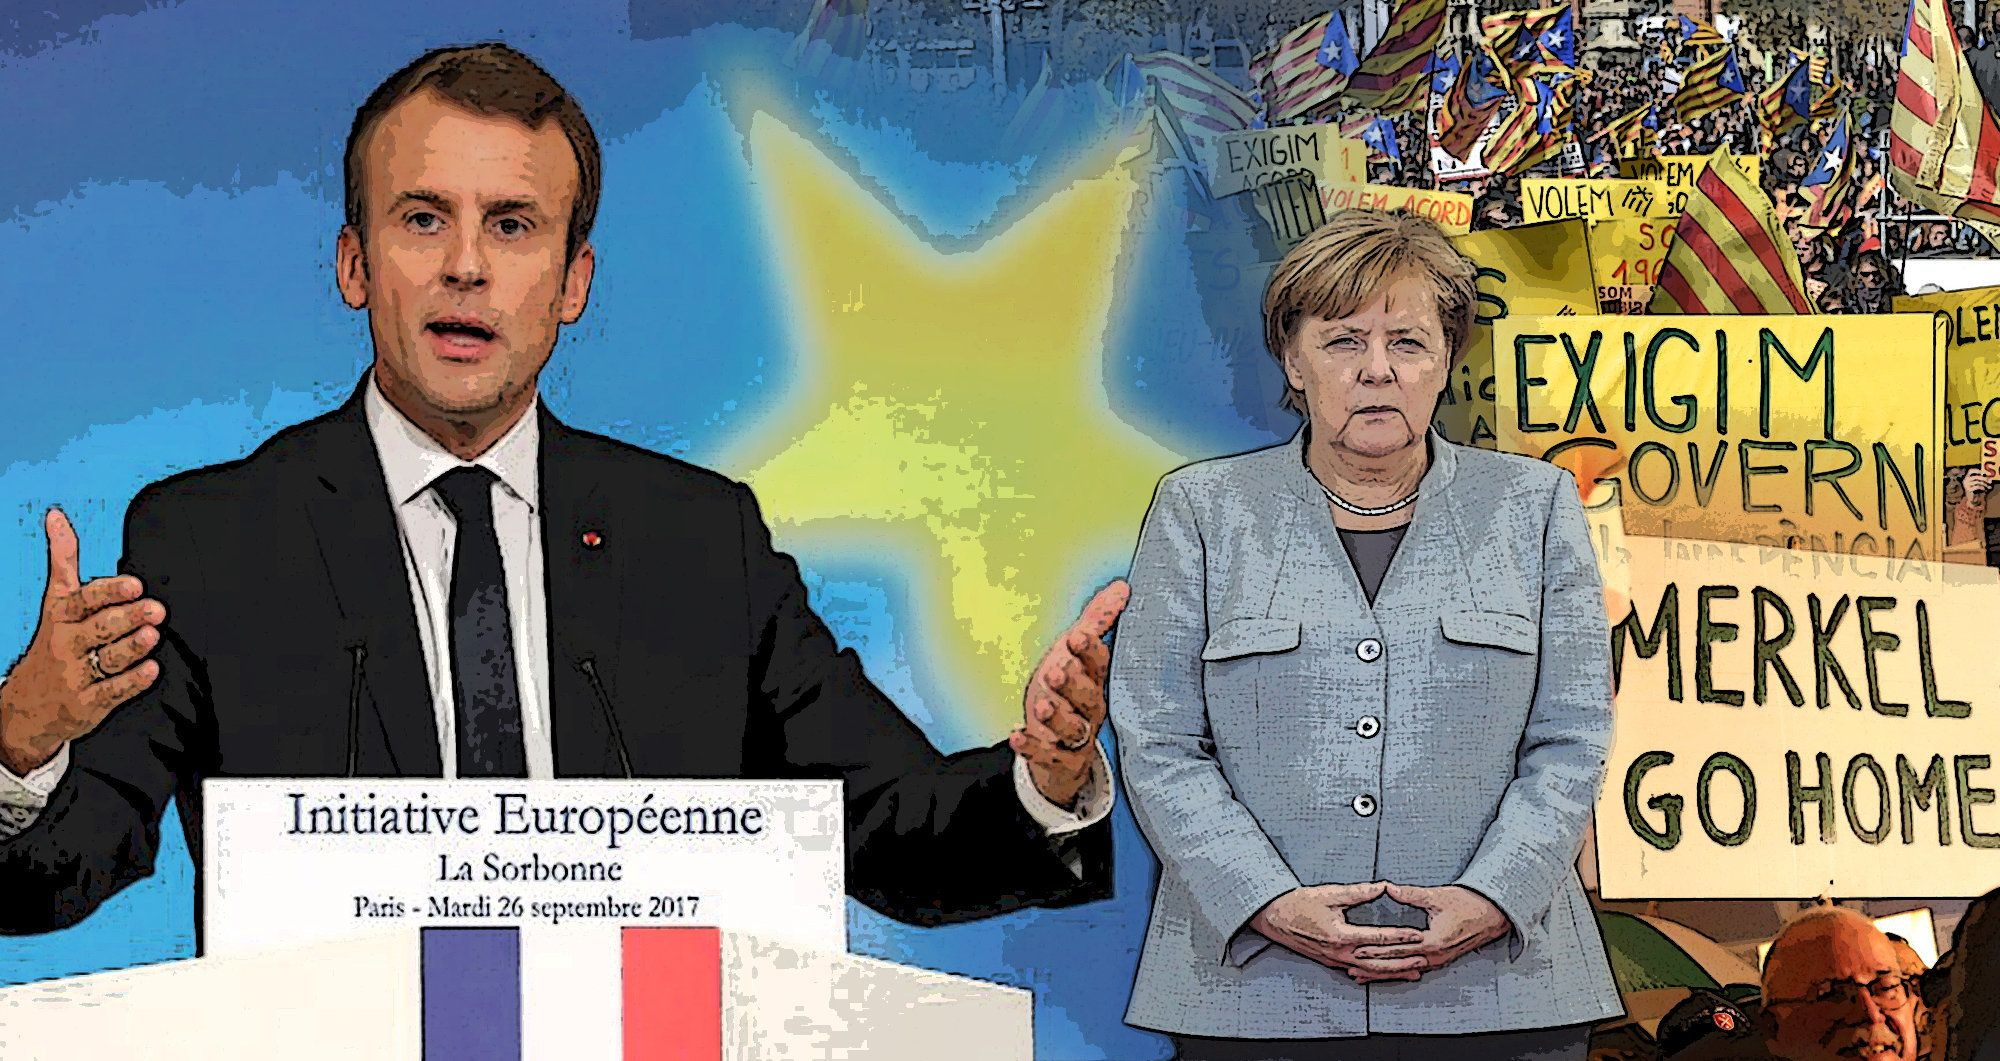 Faced with secessionist and populist movements, Europe is fighting to remain united.